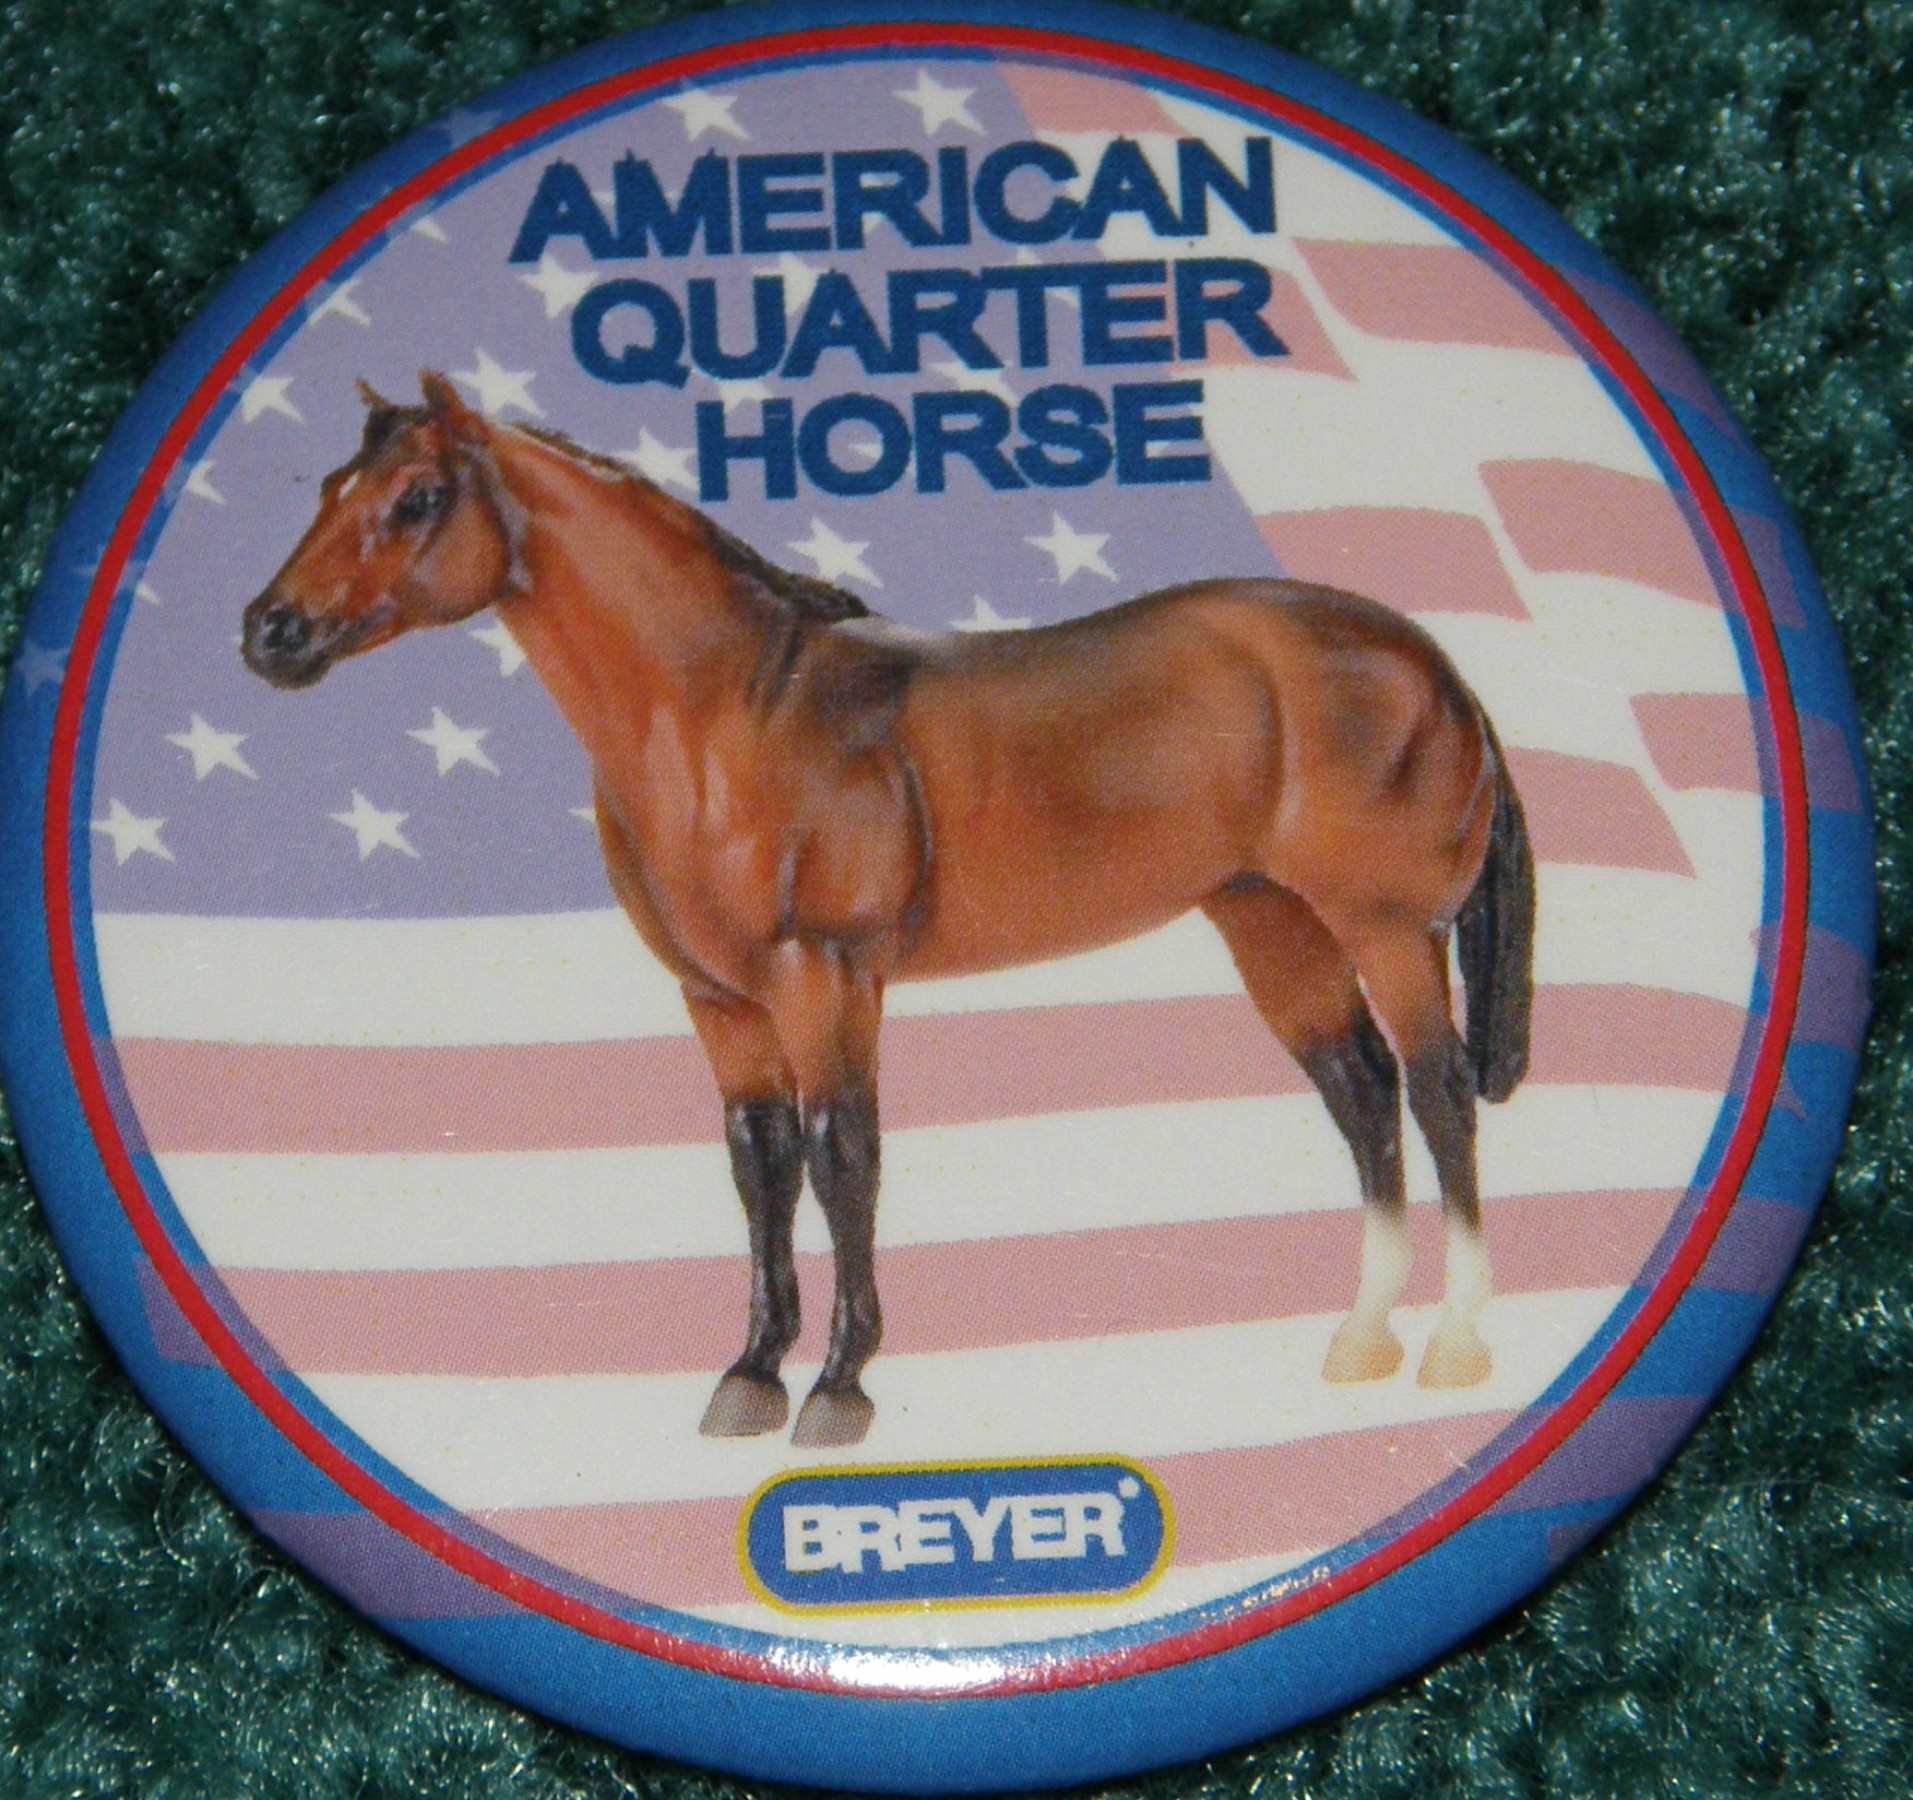 Breyer Buttons Page 3